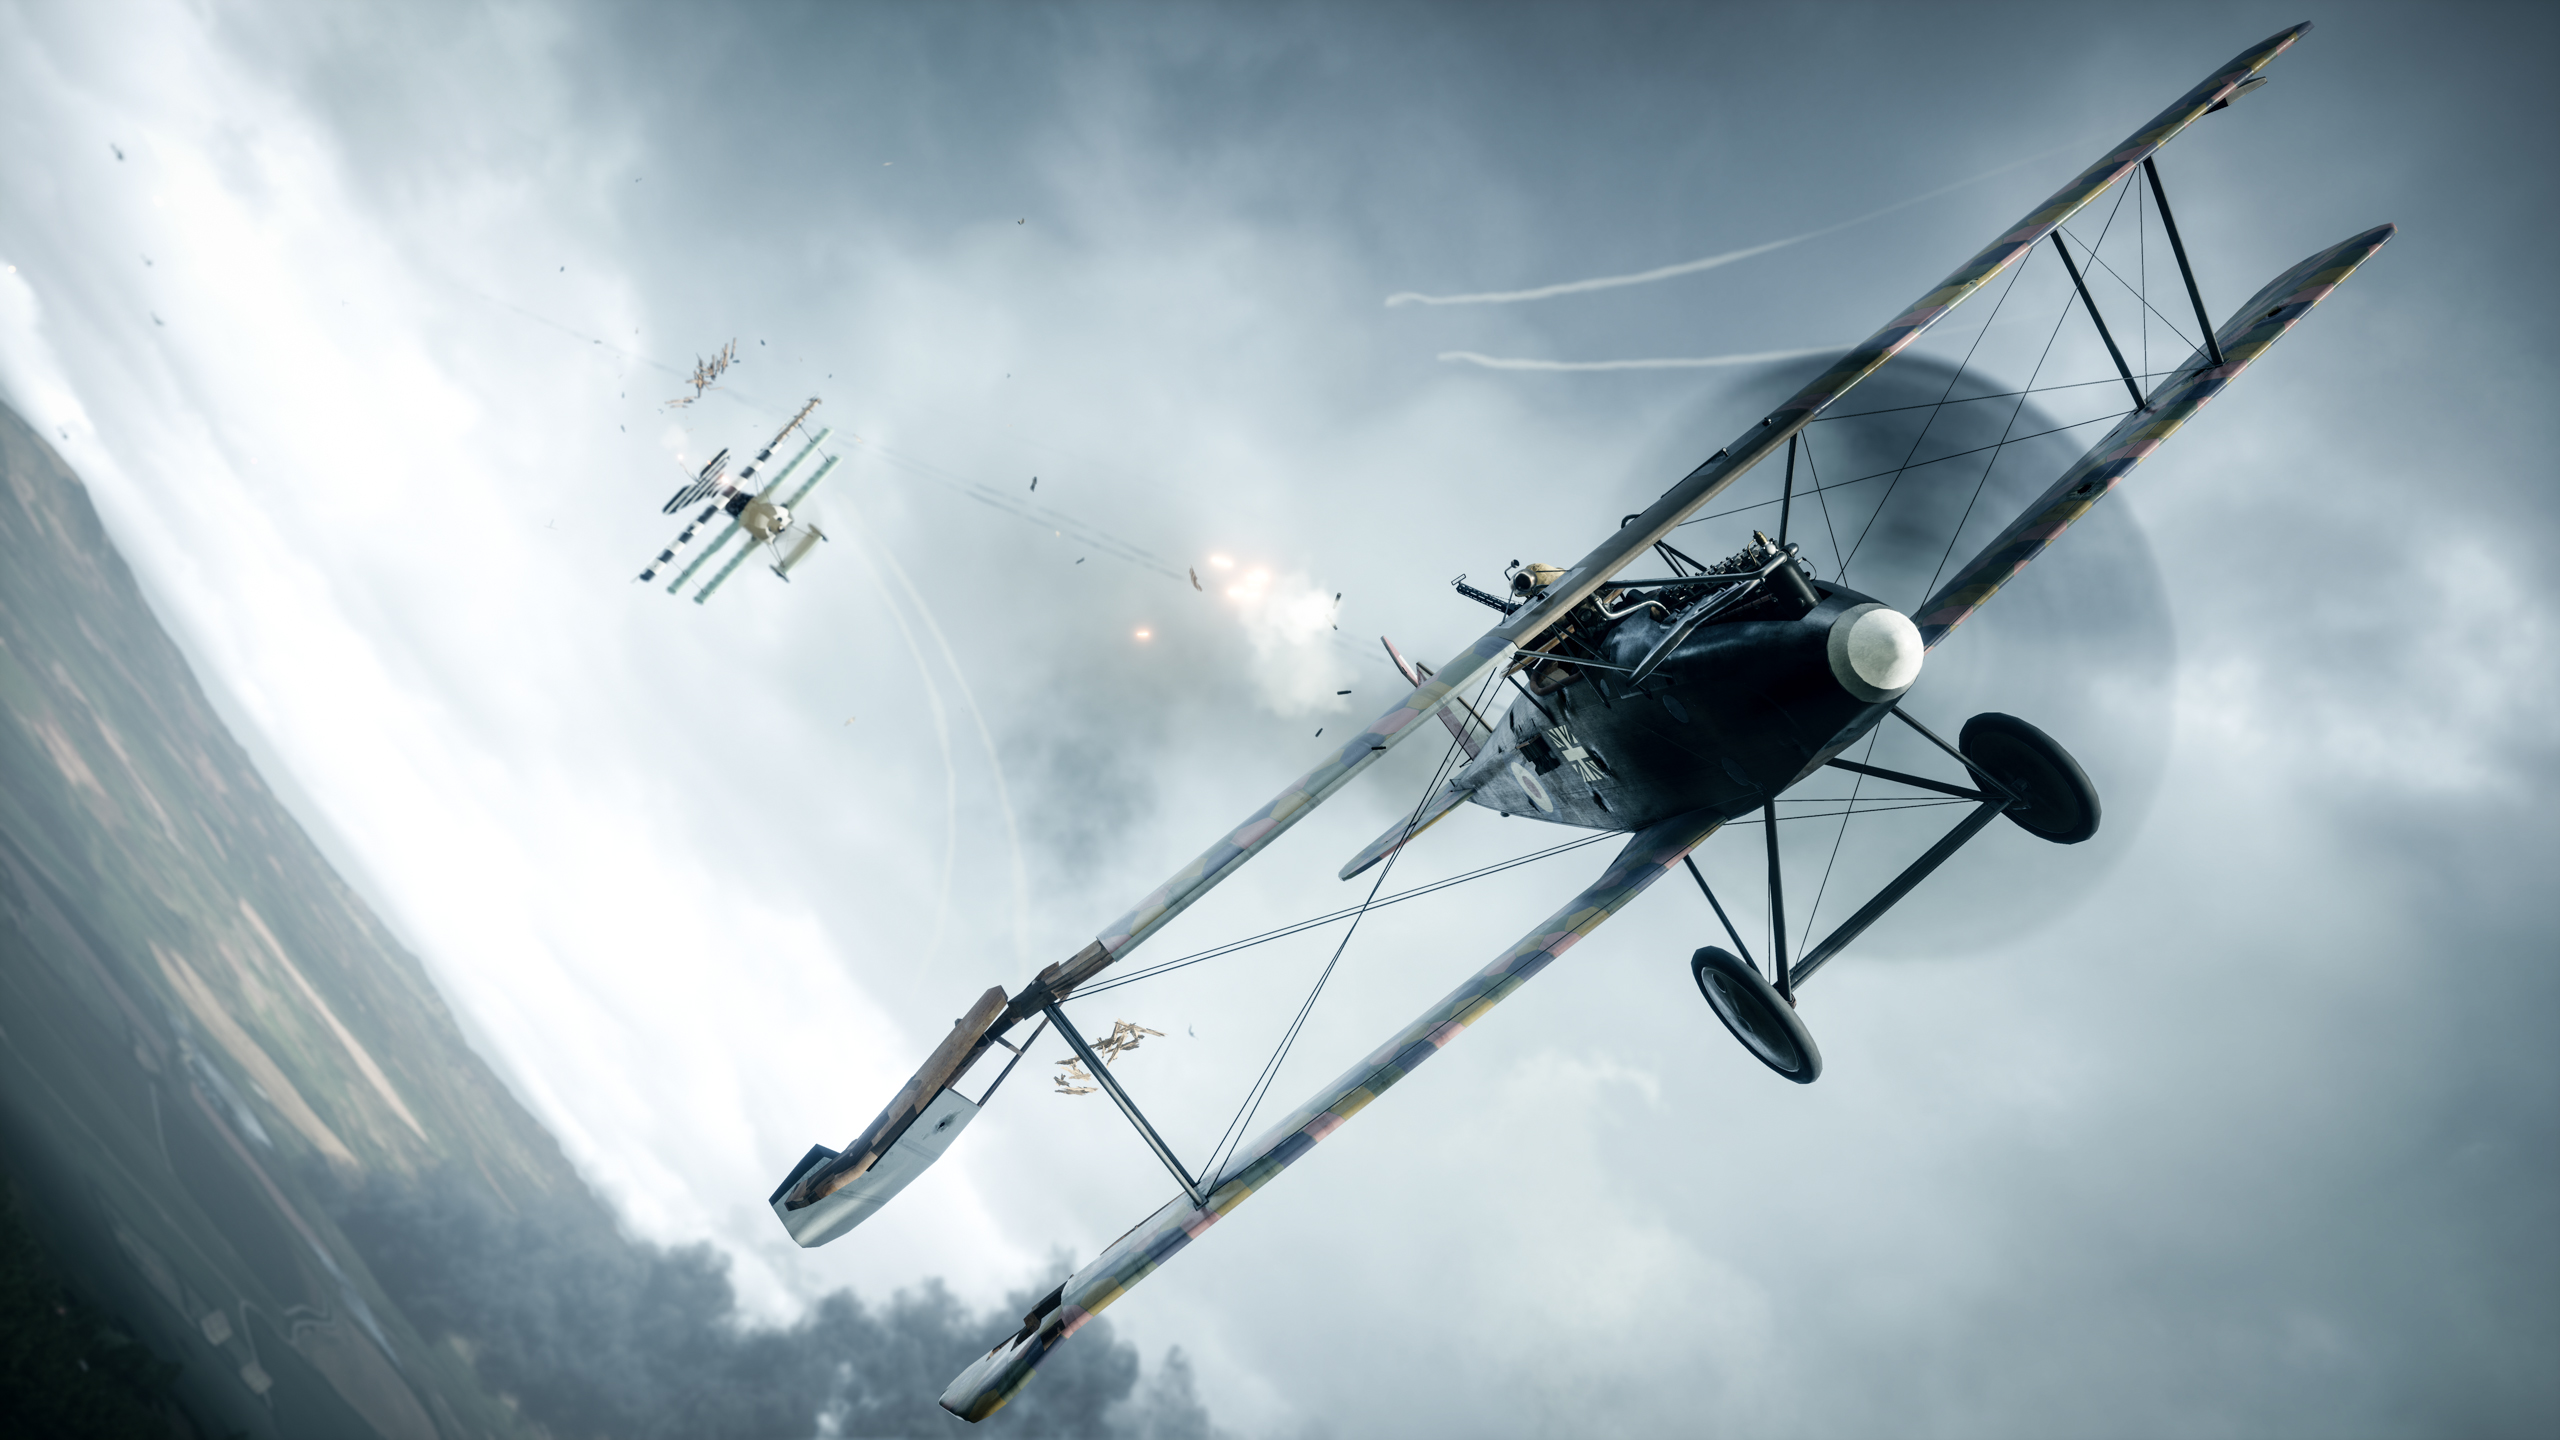 Battlefield 1 Computer Wallpapers, Desktop Backgrounds | 2560x1440 ...